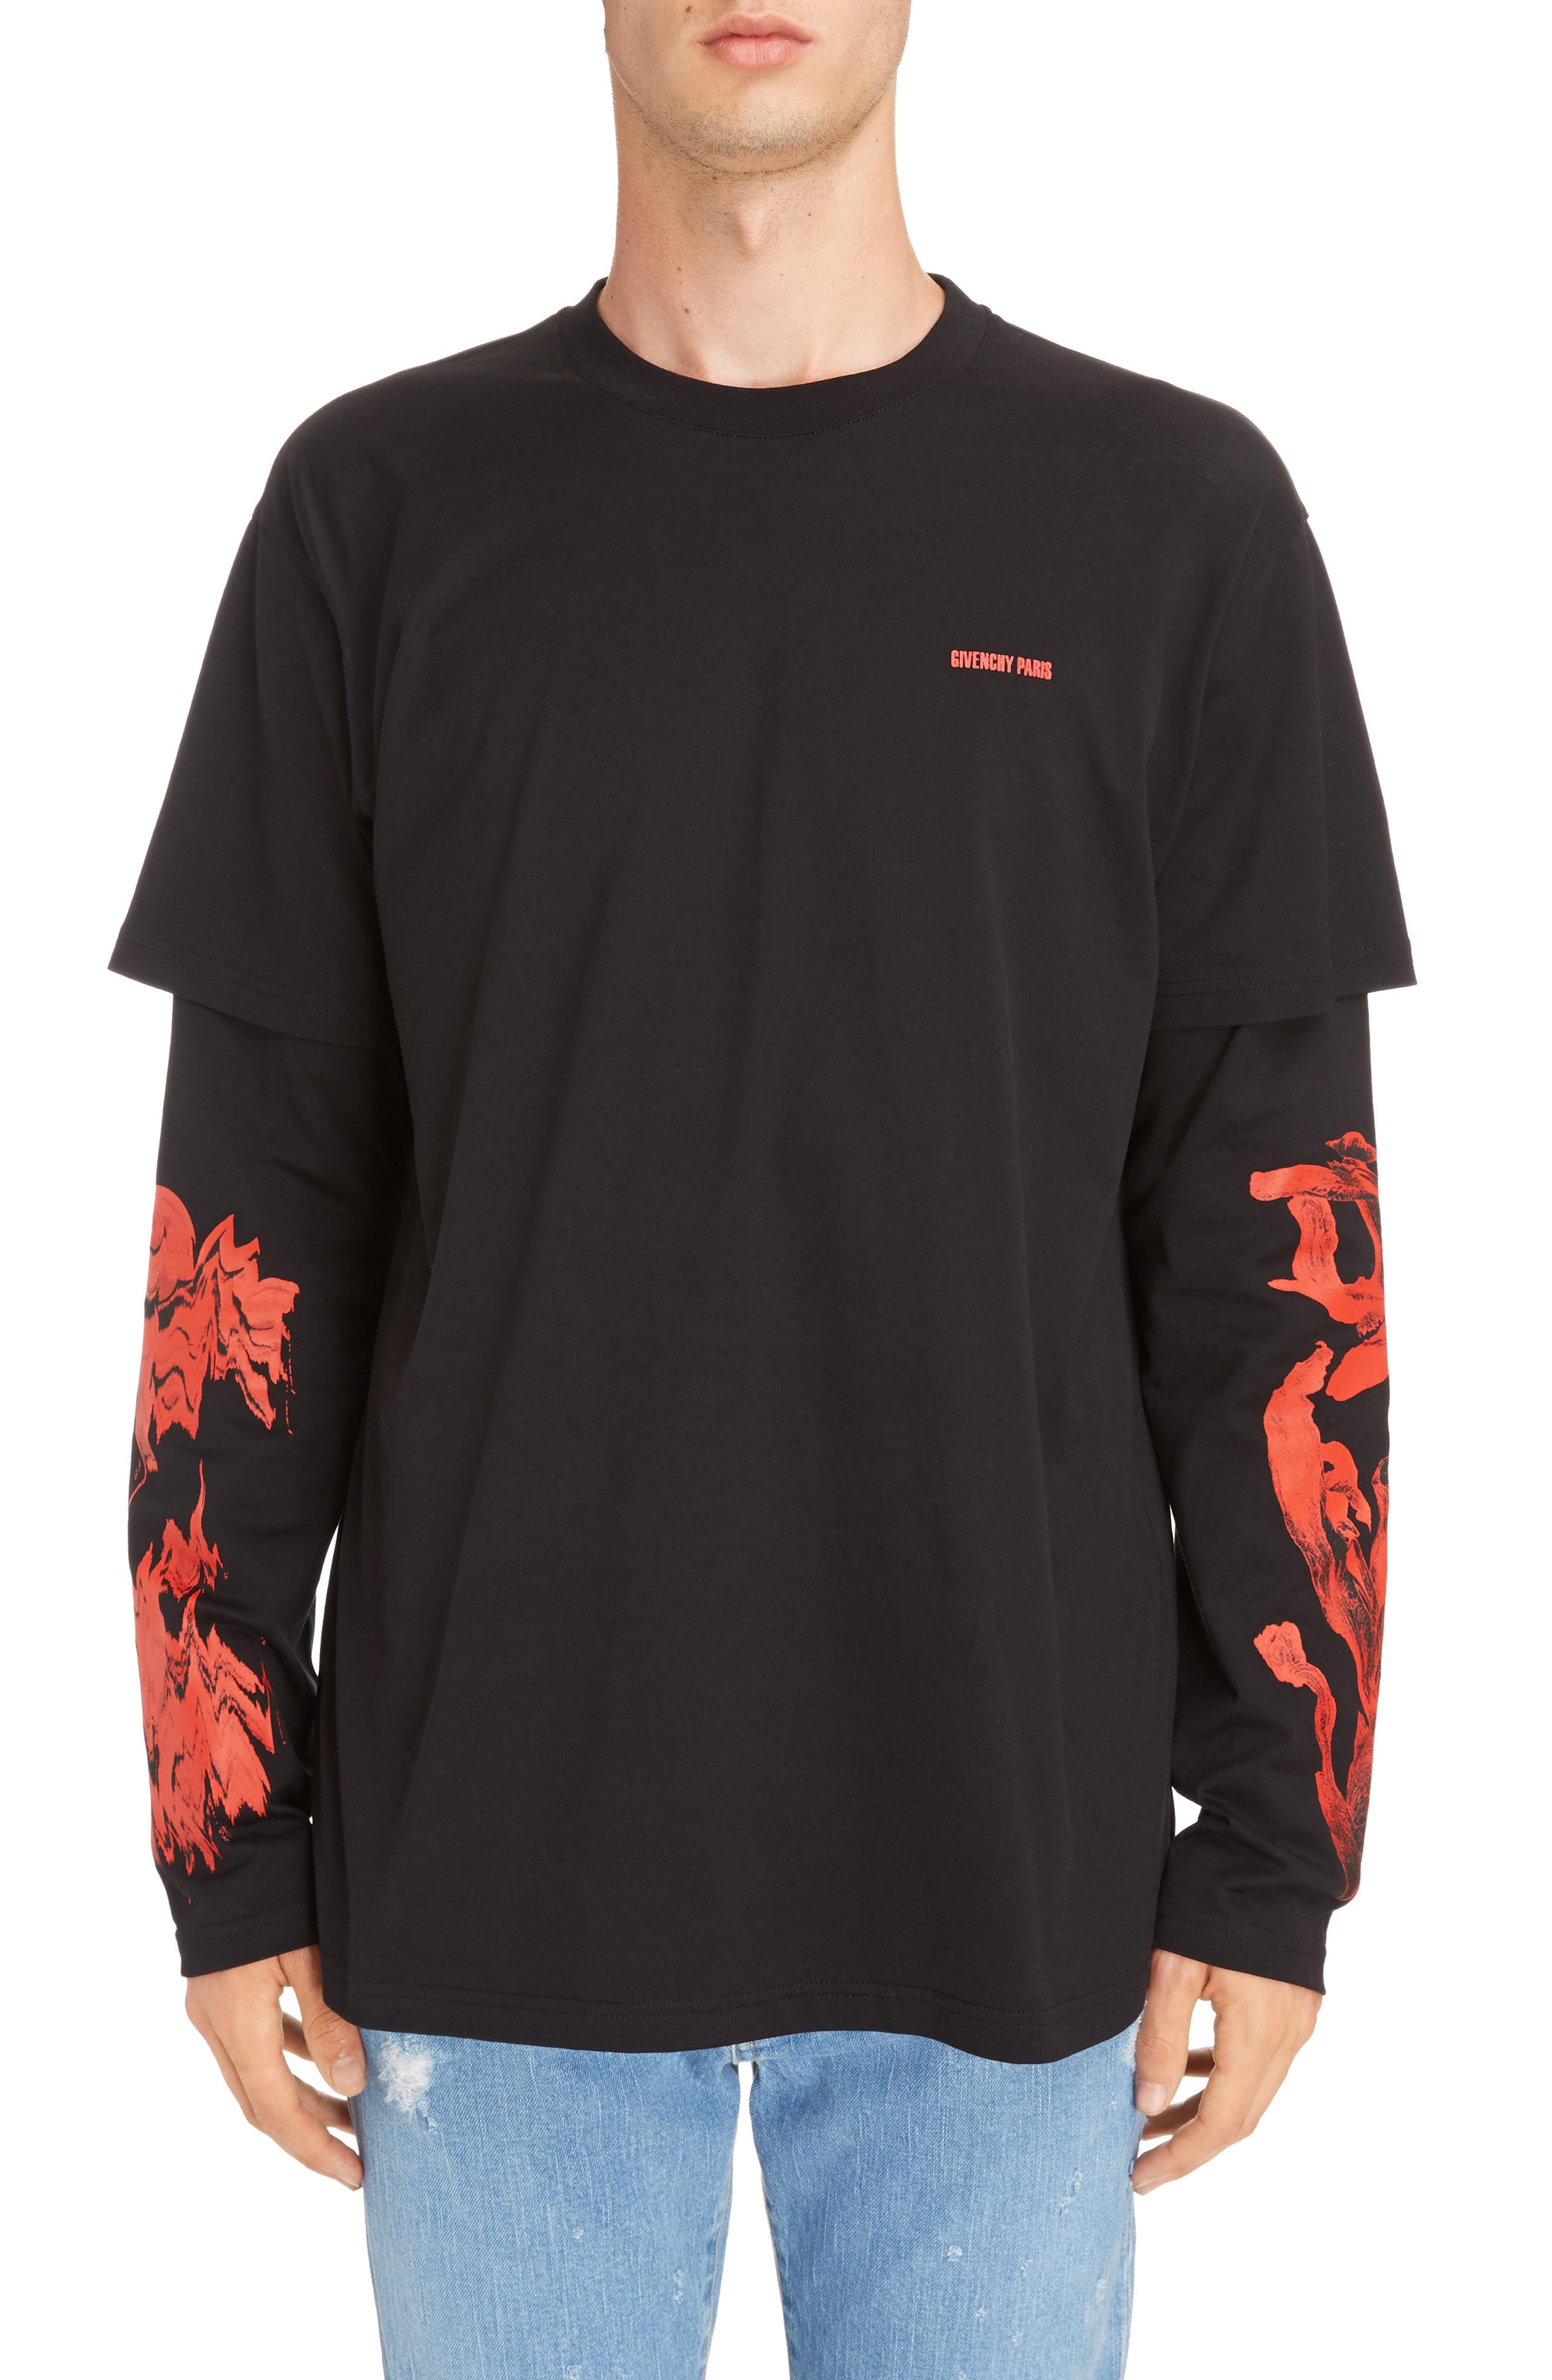 Rose Print Long Sleeve T-Shirt,                         Main,                         color, Black/Red